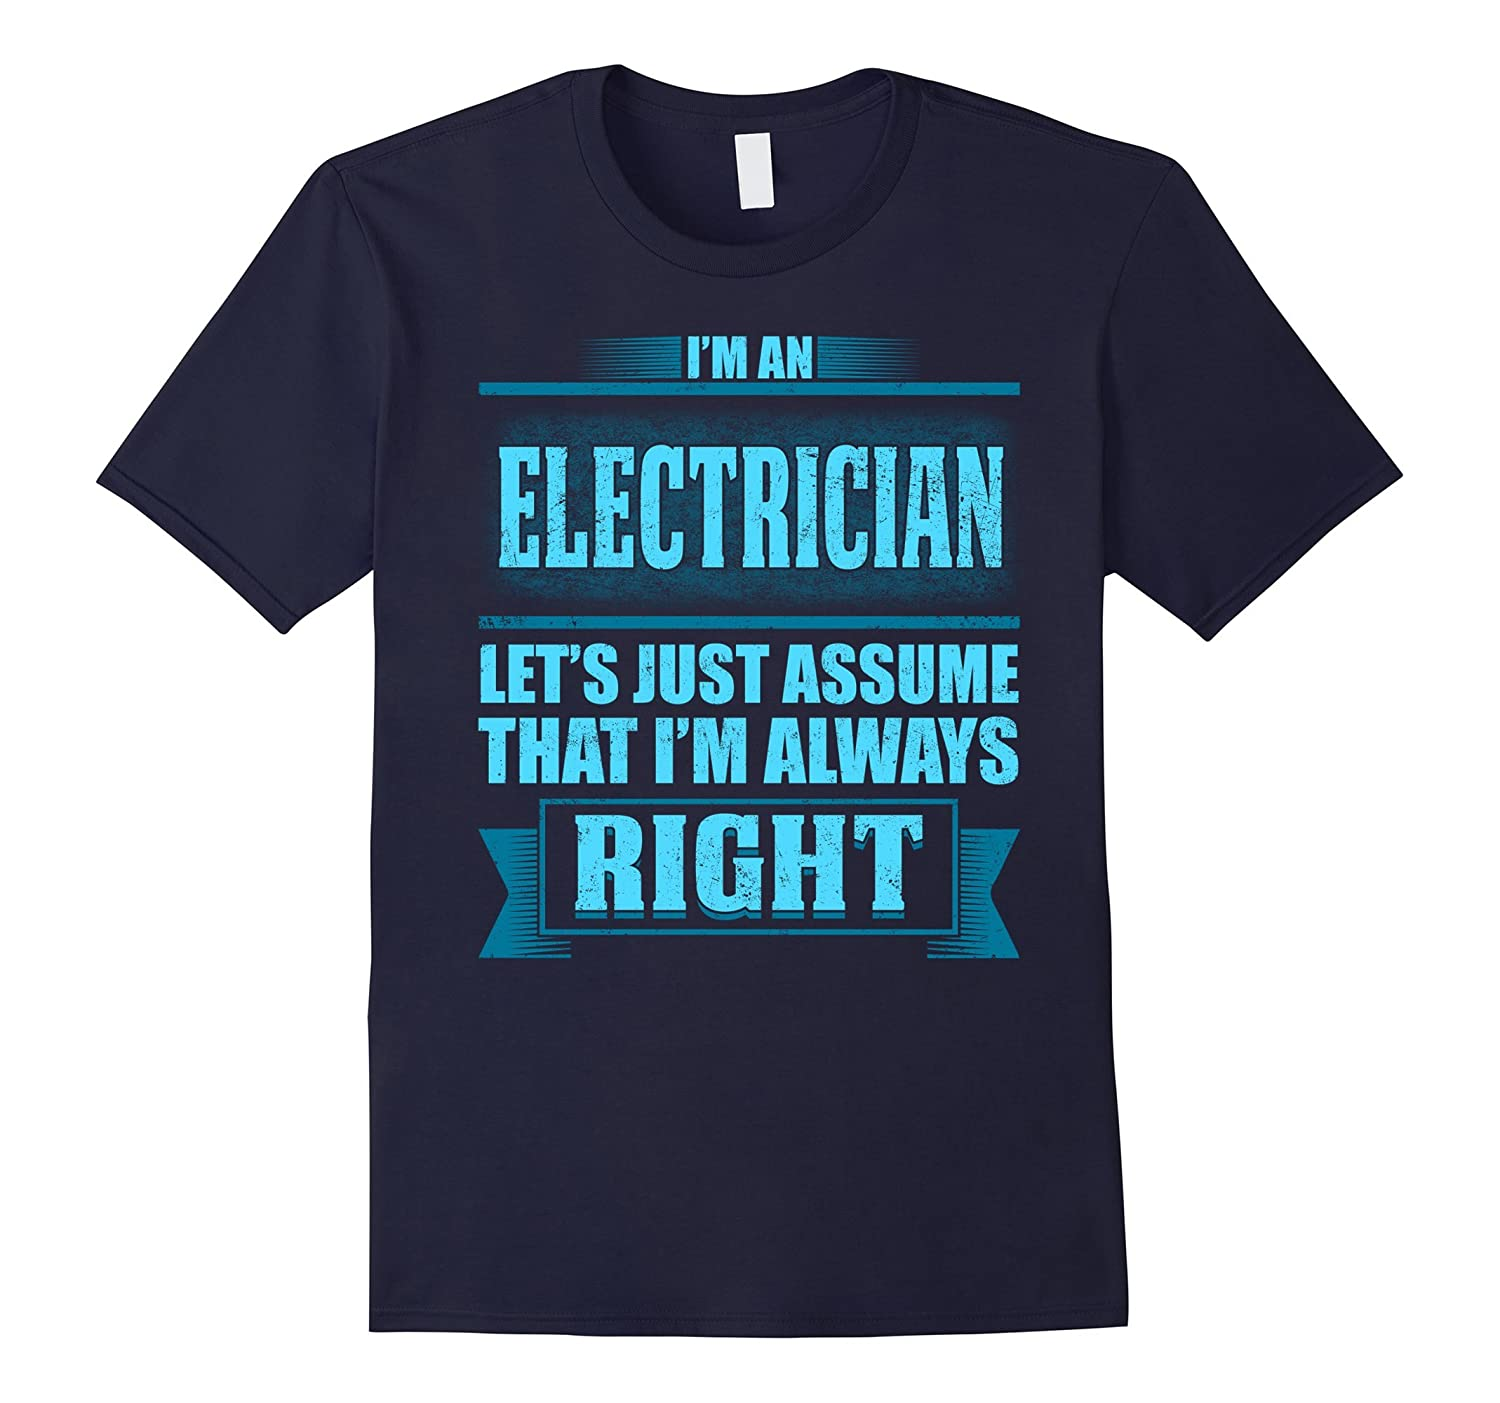 Im An Electrician T-shirt Lets Just Assume That Im Right-TD